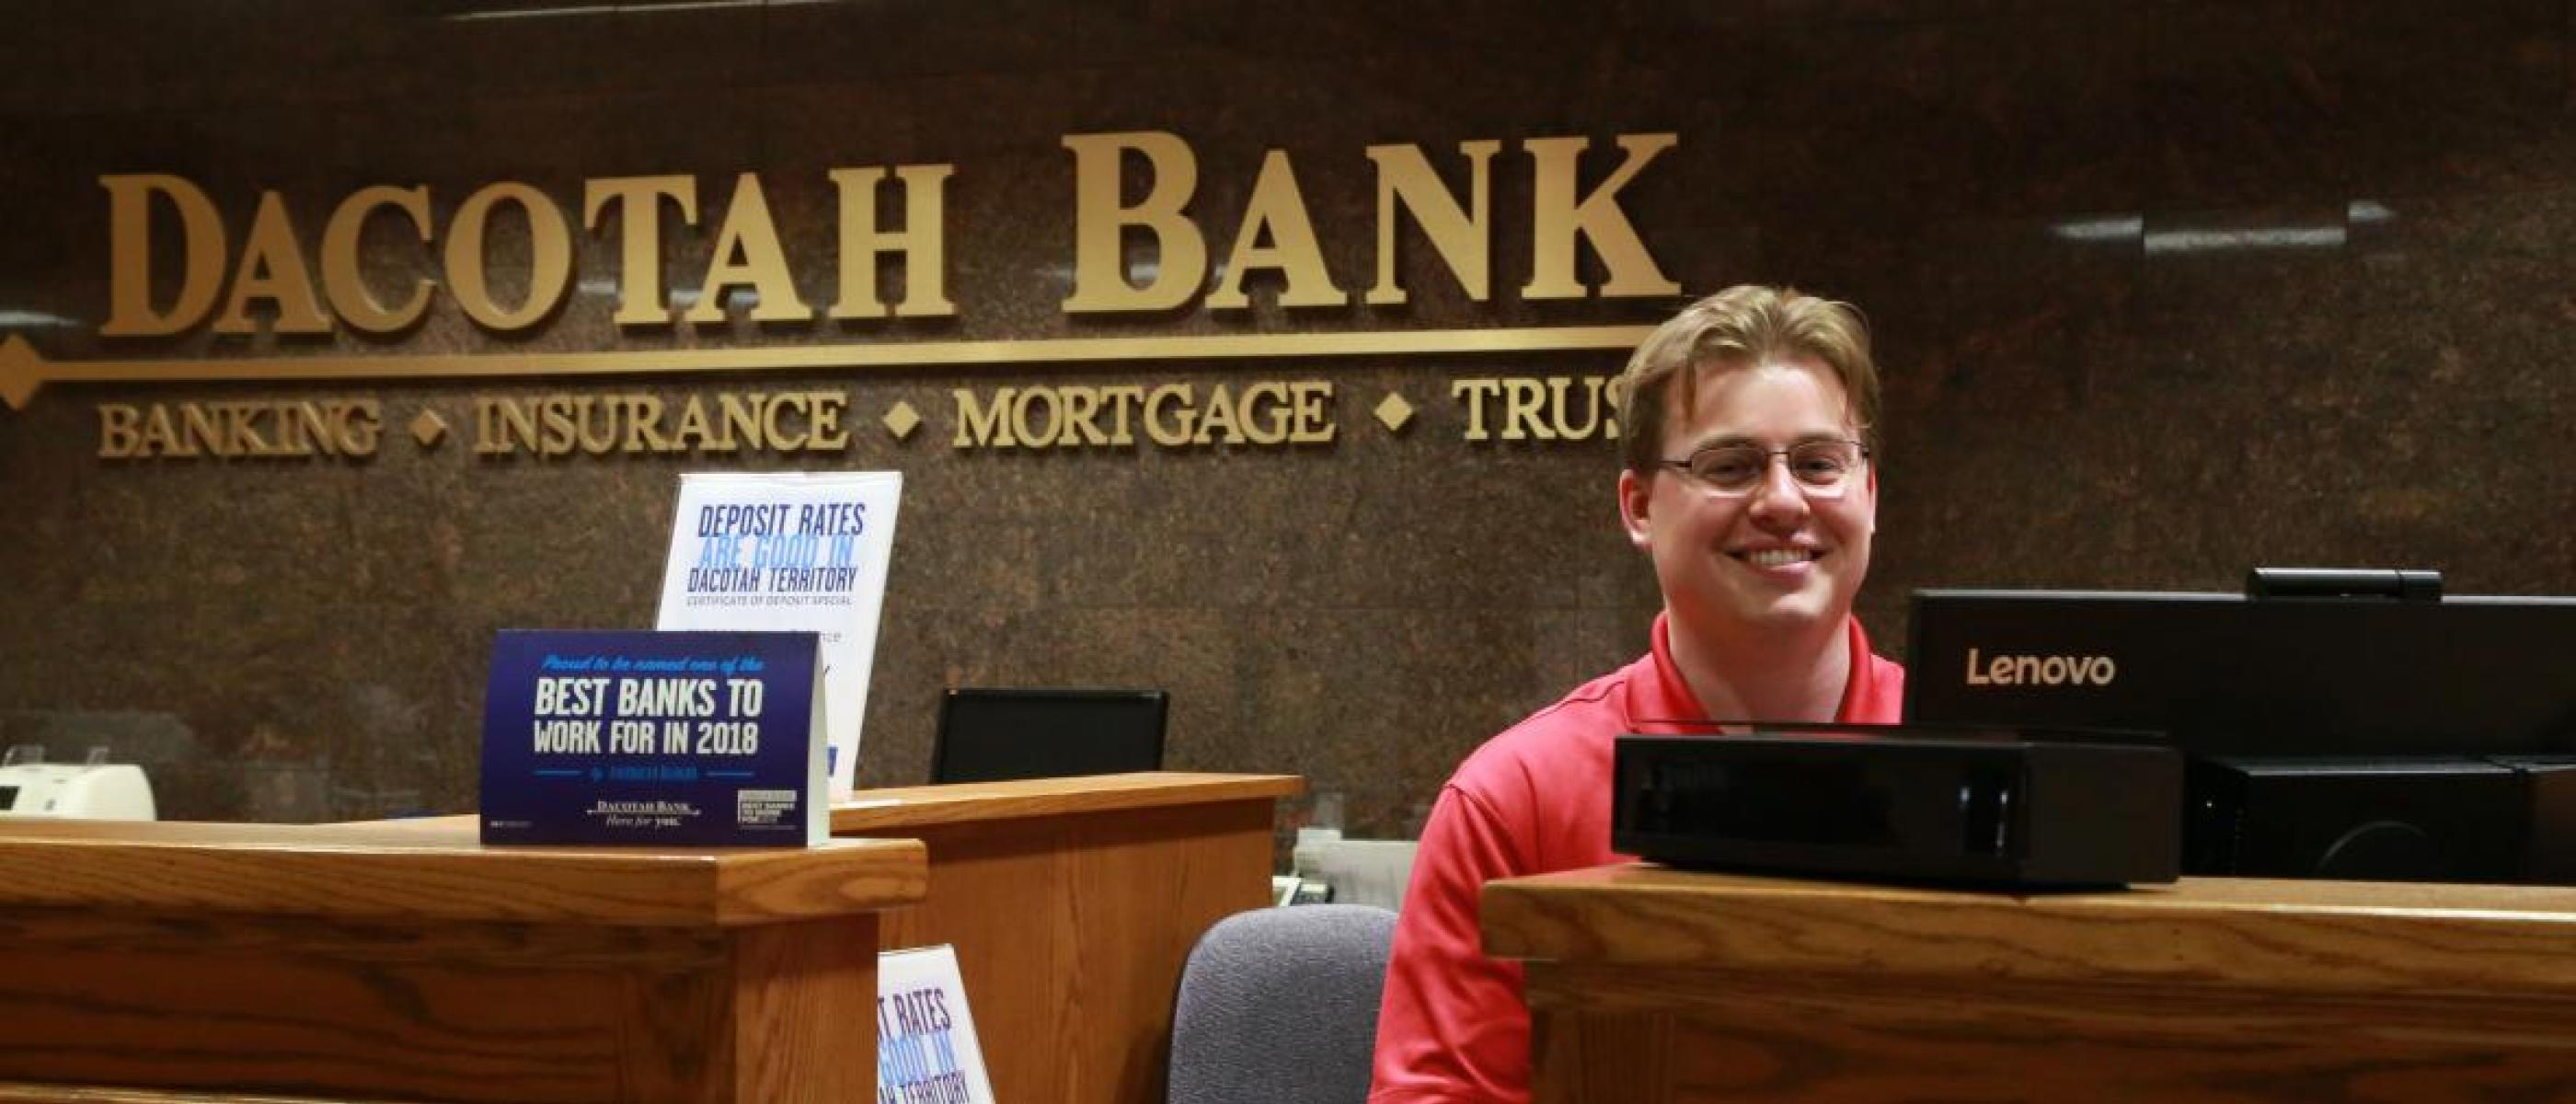 Male bank teller standing in bank